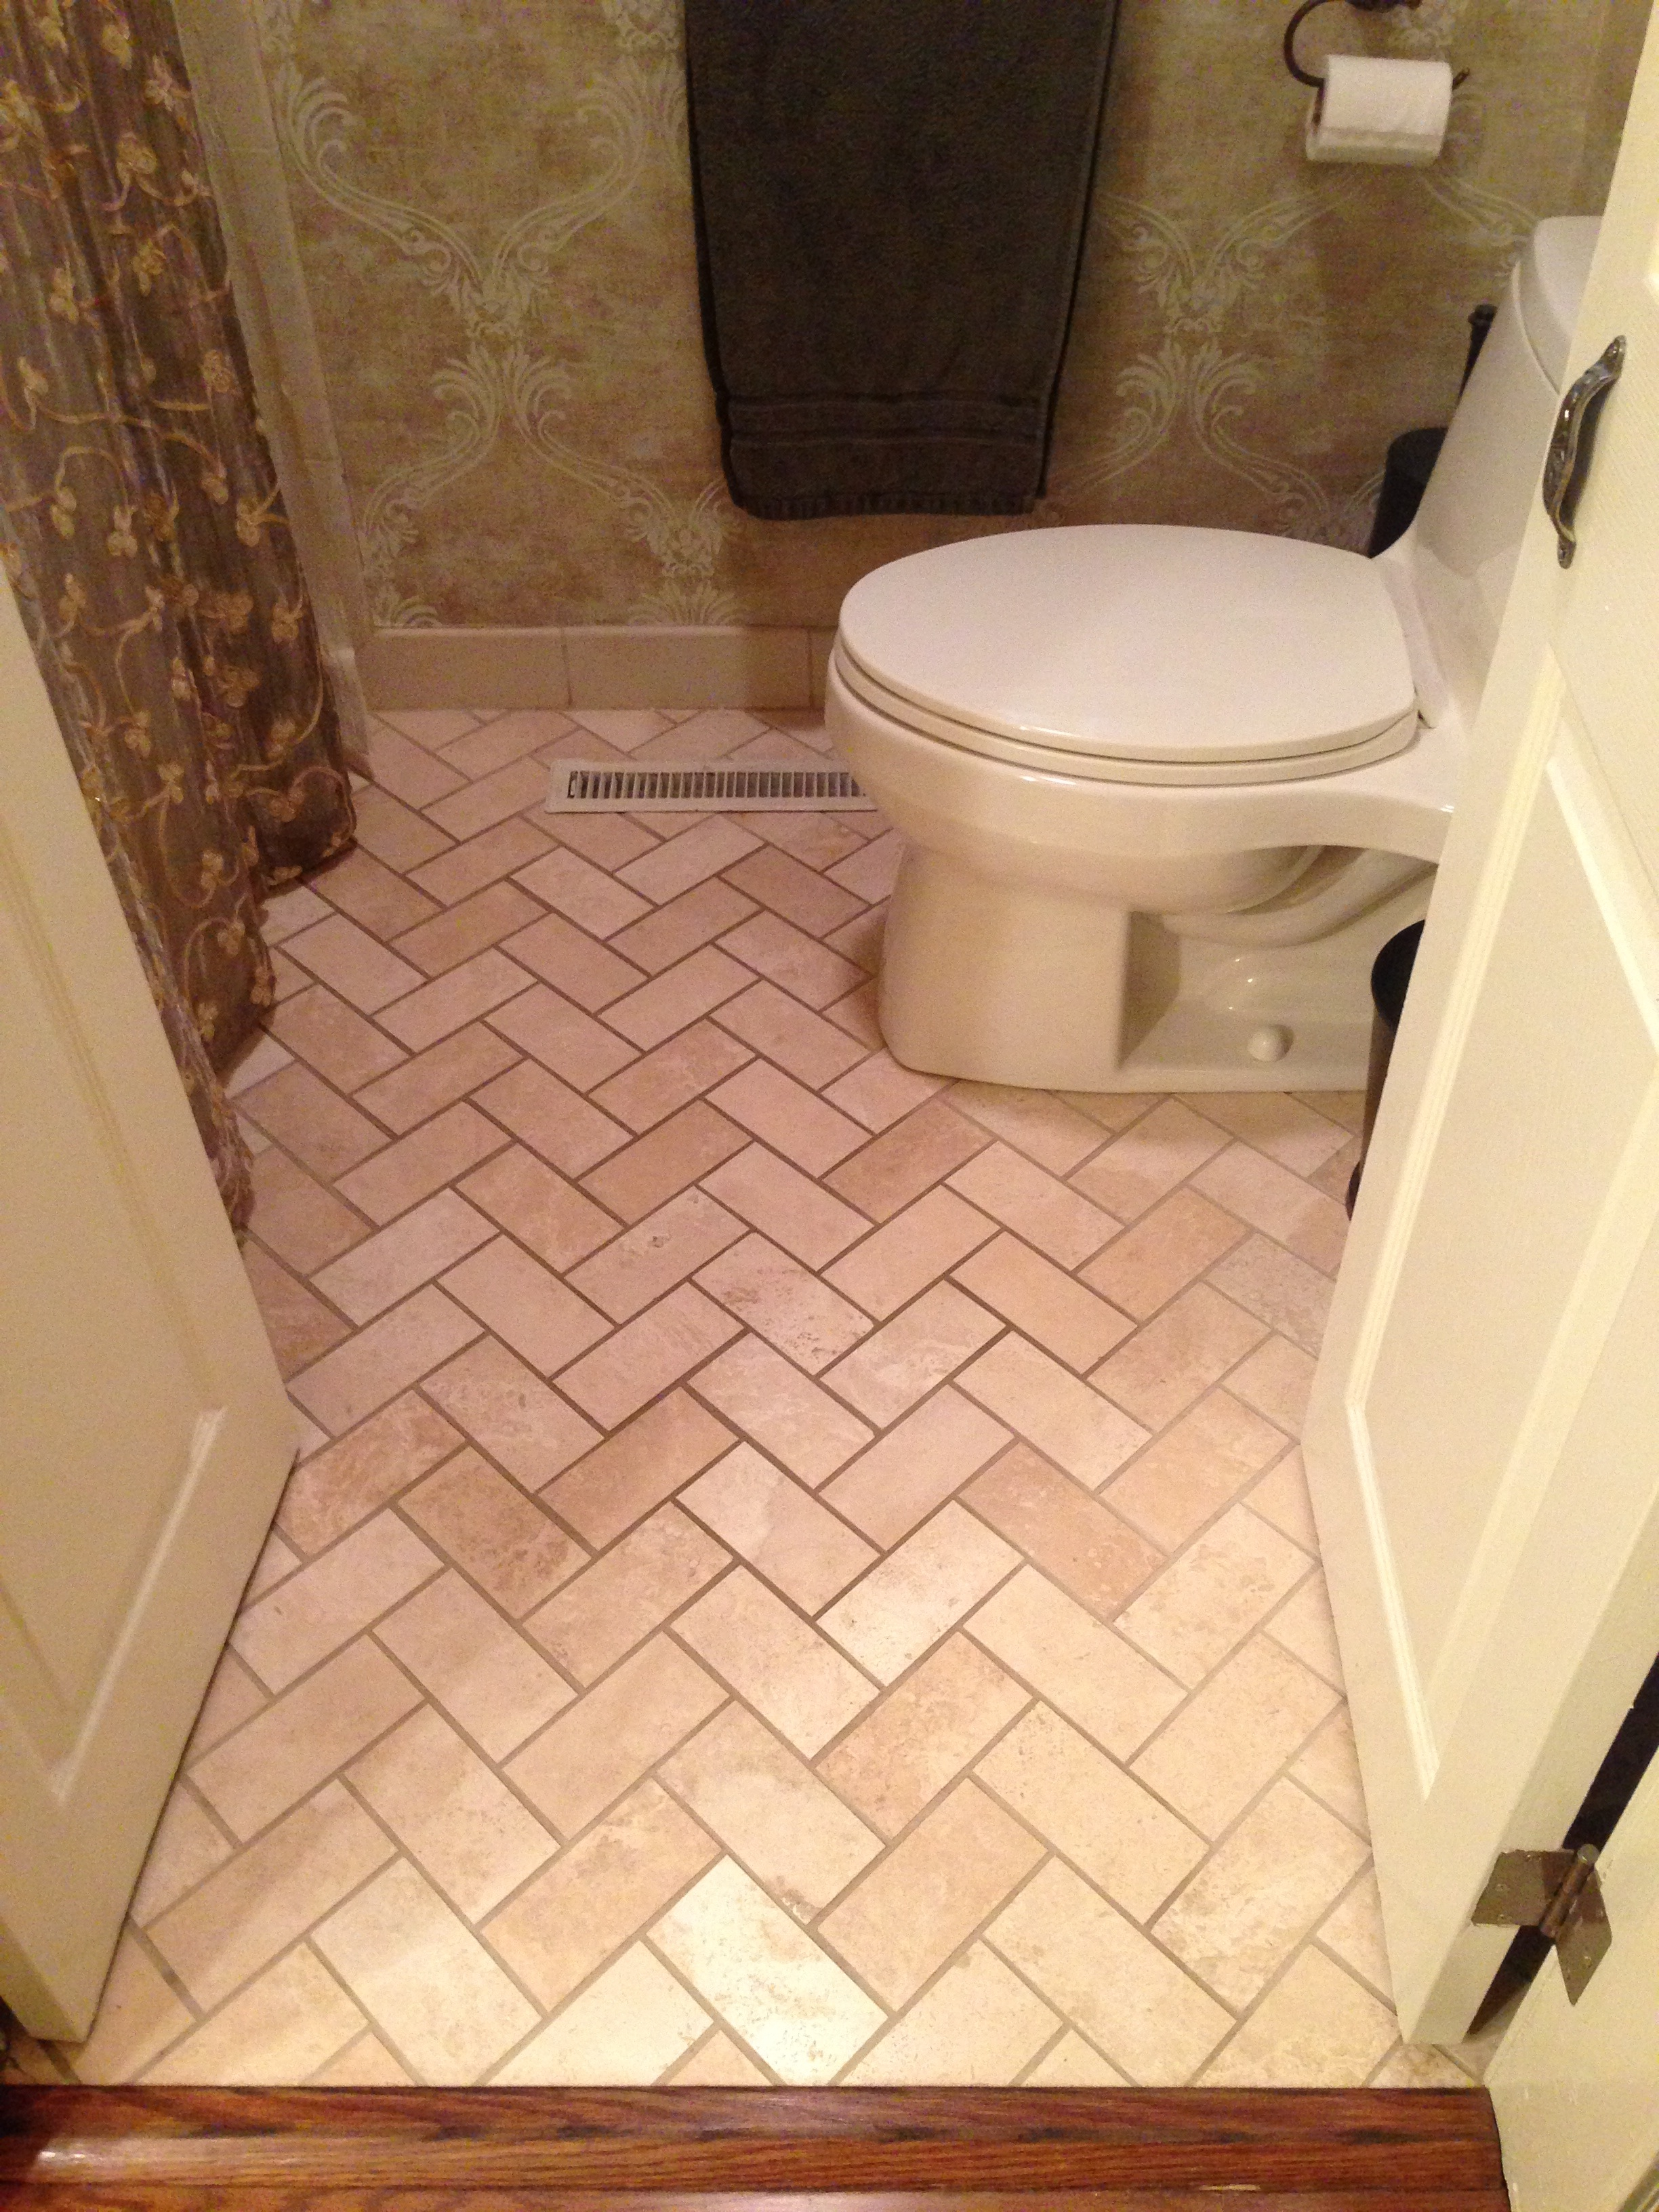 Laminate Bathroom Tiles Laminate Bathroom Flooring Photo 5 Design Your Home